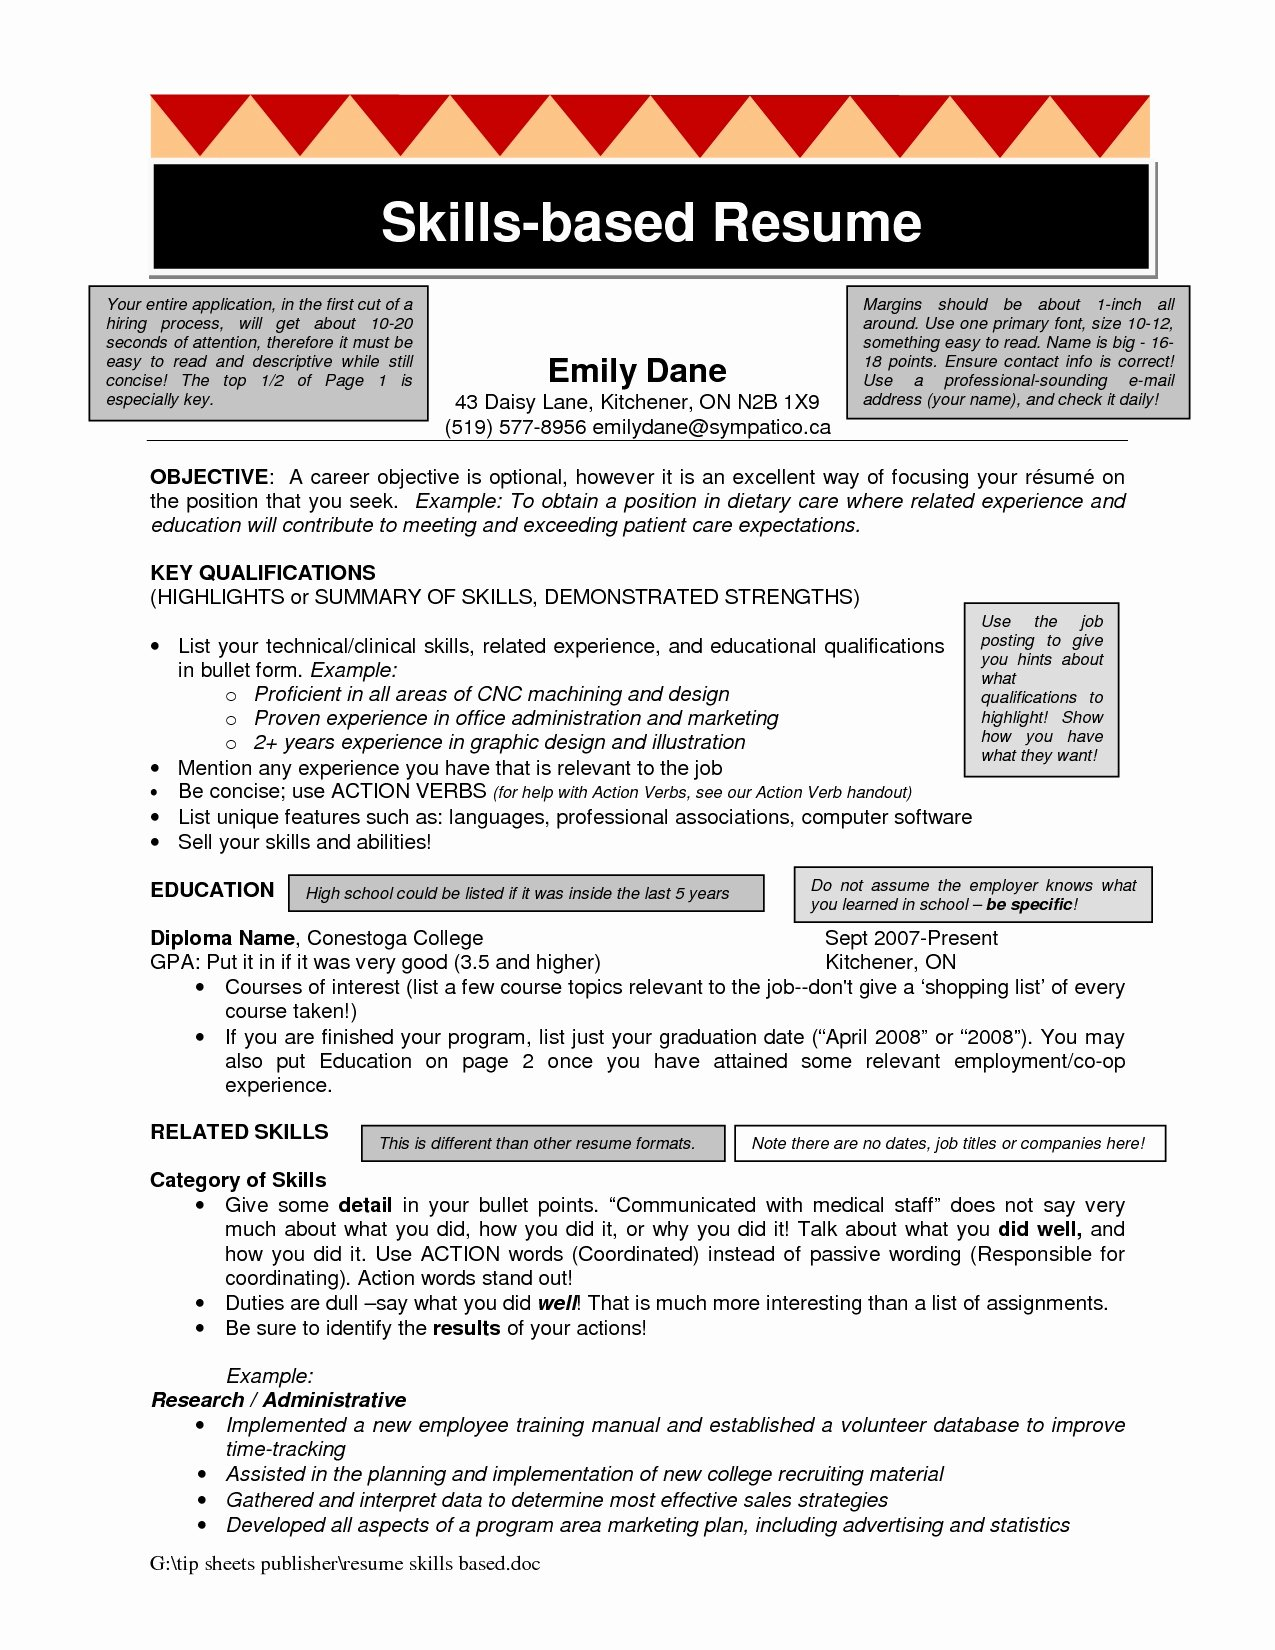 Skills Based Resume Templates Skills for Resume Resume